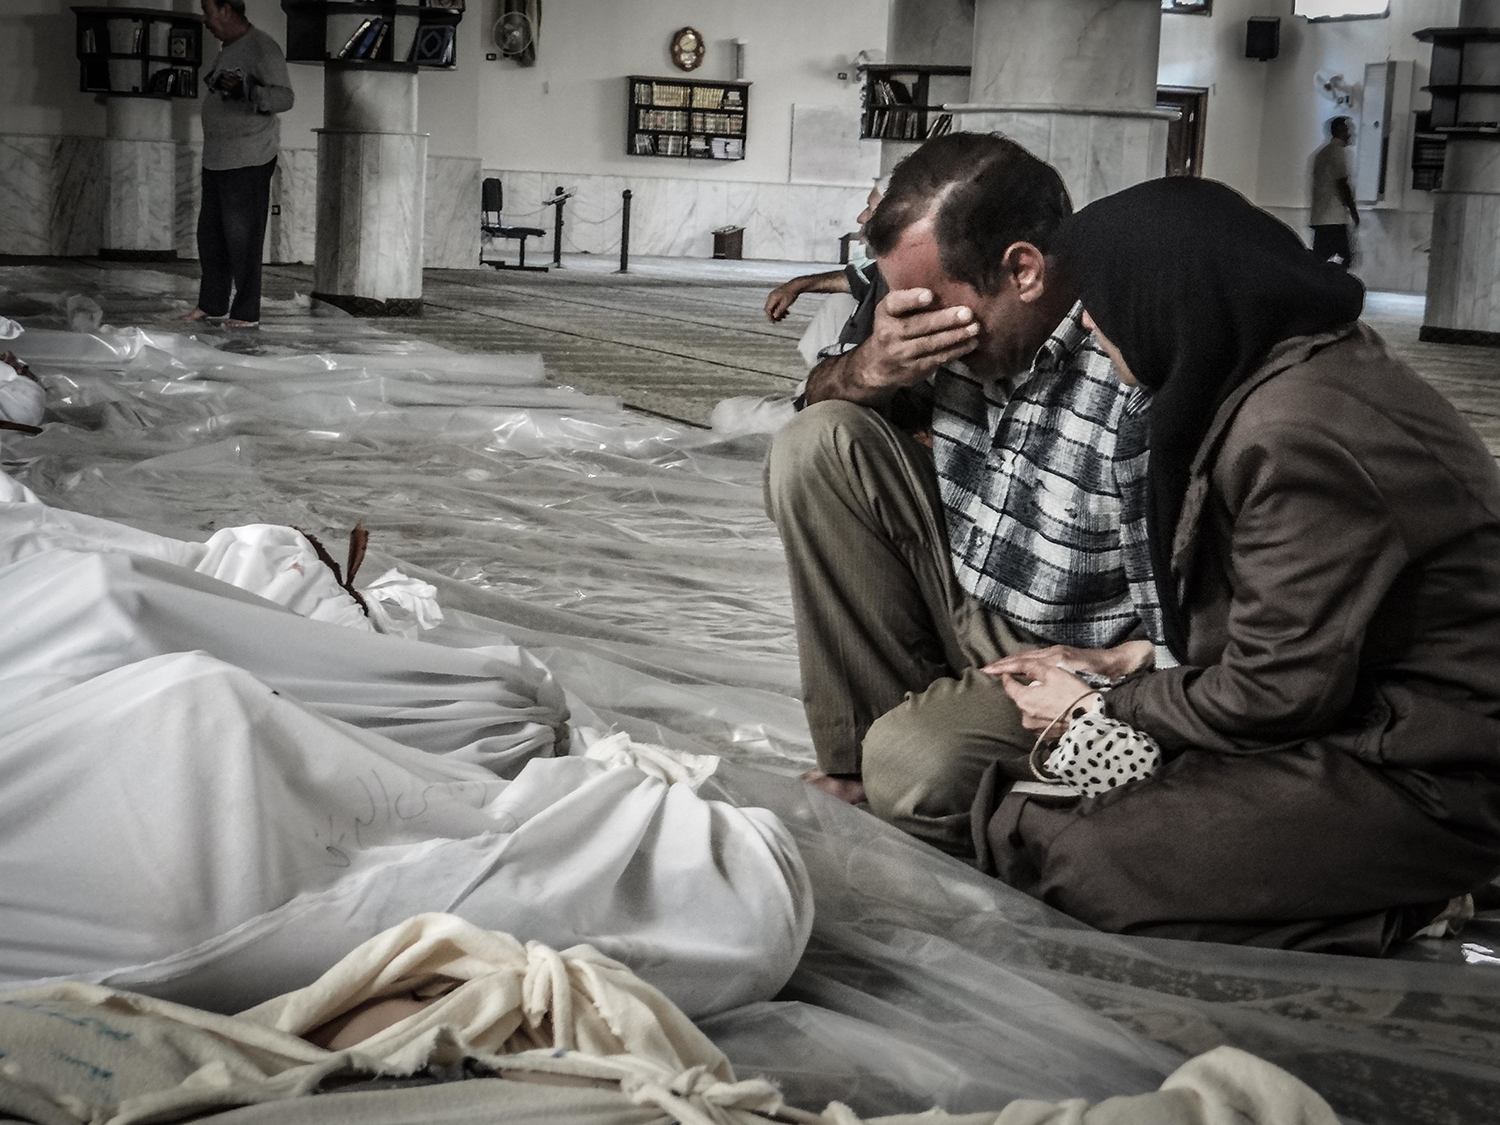 A mother and father weep over their child's body who was killed in a suspected chemical weapons attack on the Damascus suburb of Ghouta, in August 21, 2013. (Credit: NurPhoto/Corbis/Getty Images)